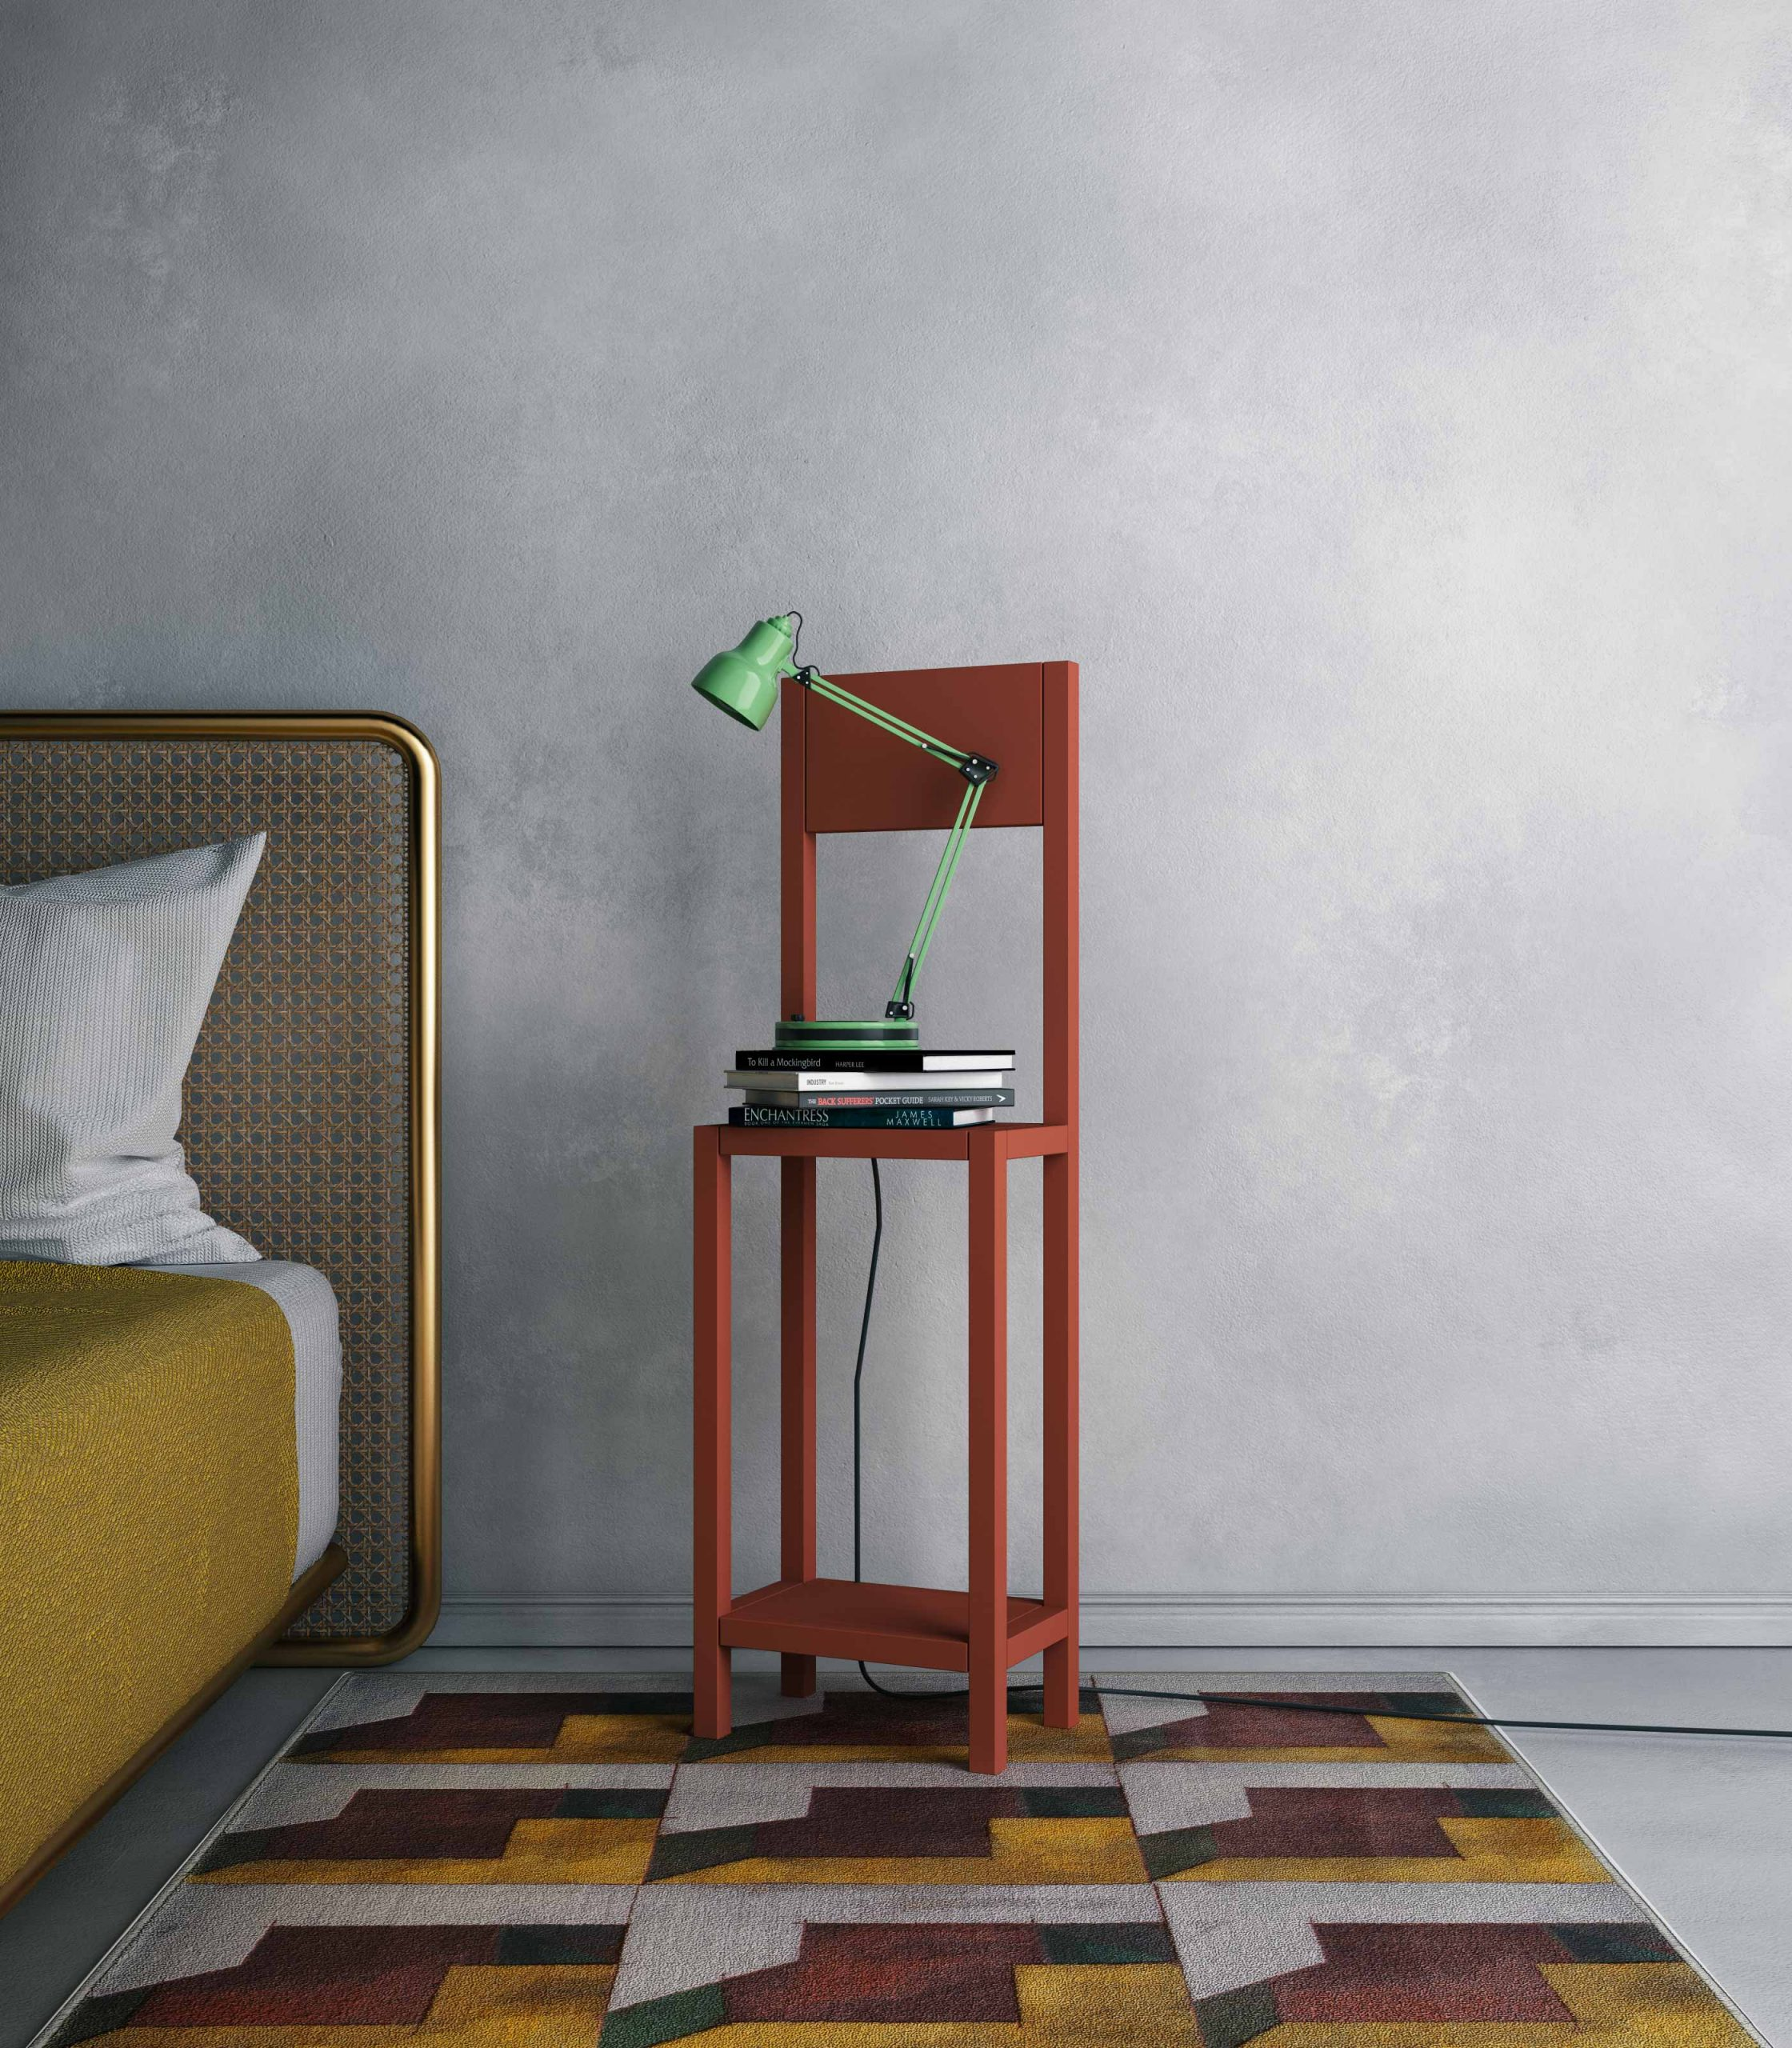 Brick red chair for an unexpected guest loopo milano design staged